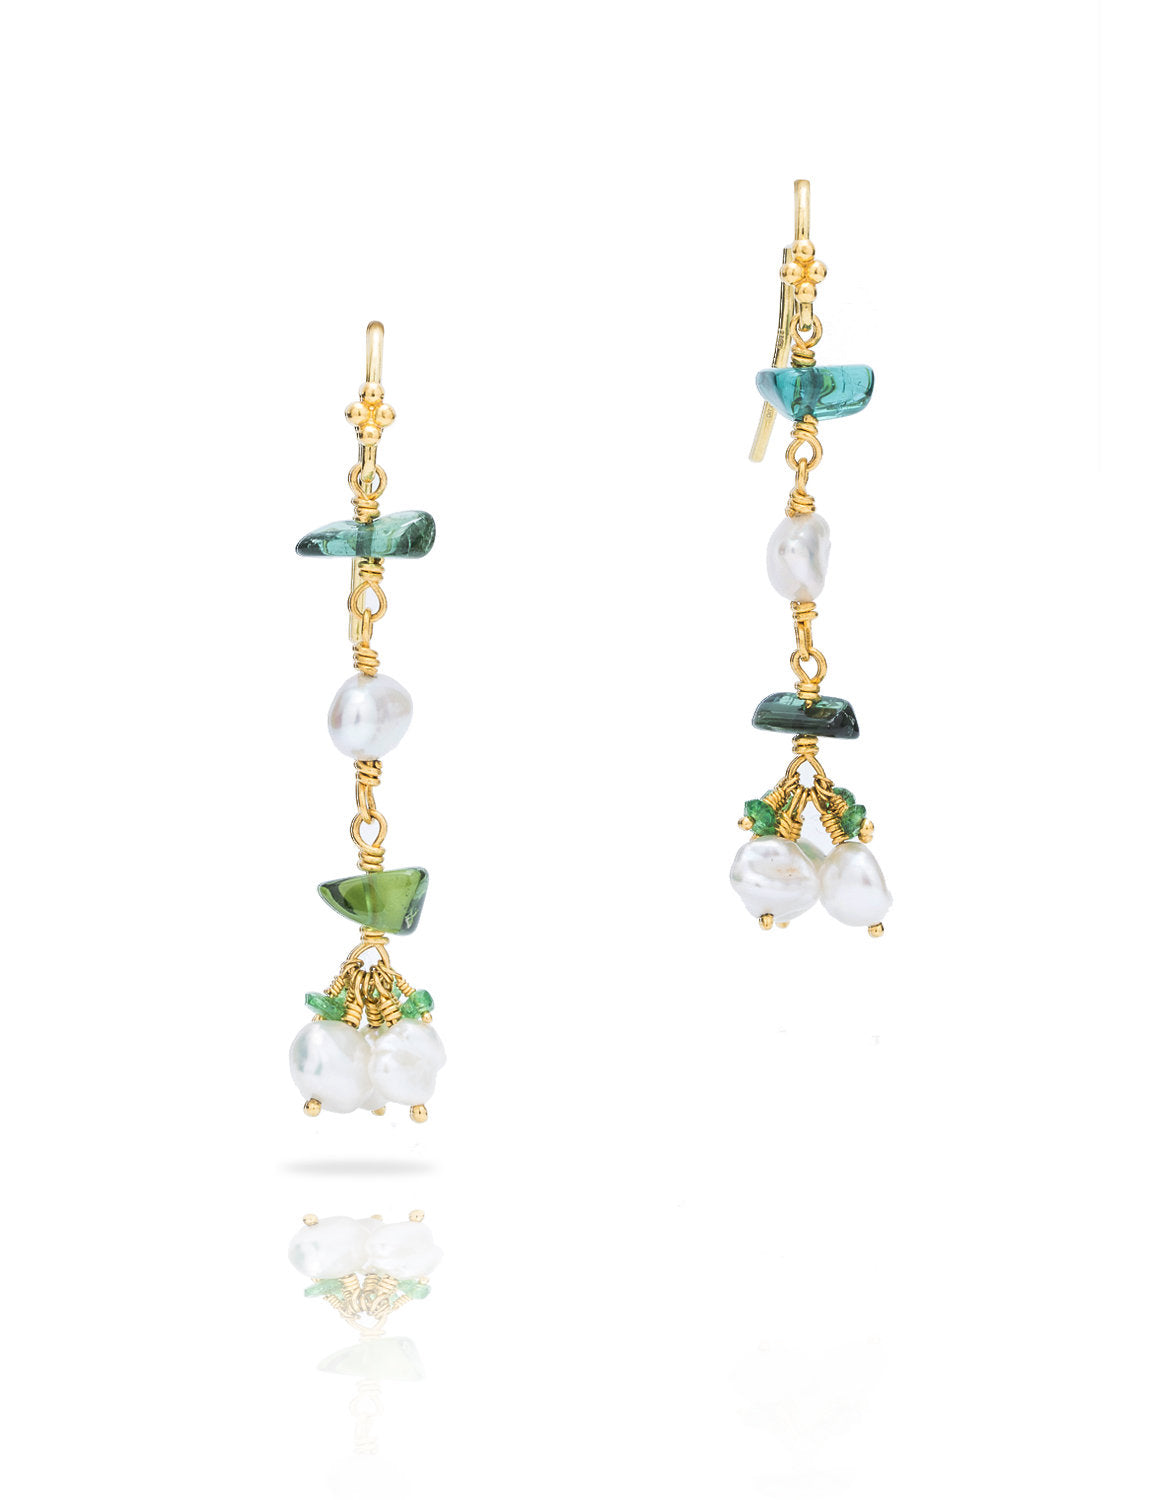 Tsavorite, Tourmaline and Pearl Dangle Earrings - Charles Koll Jewellers